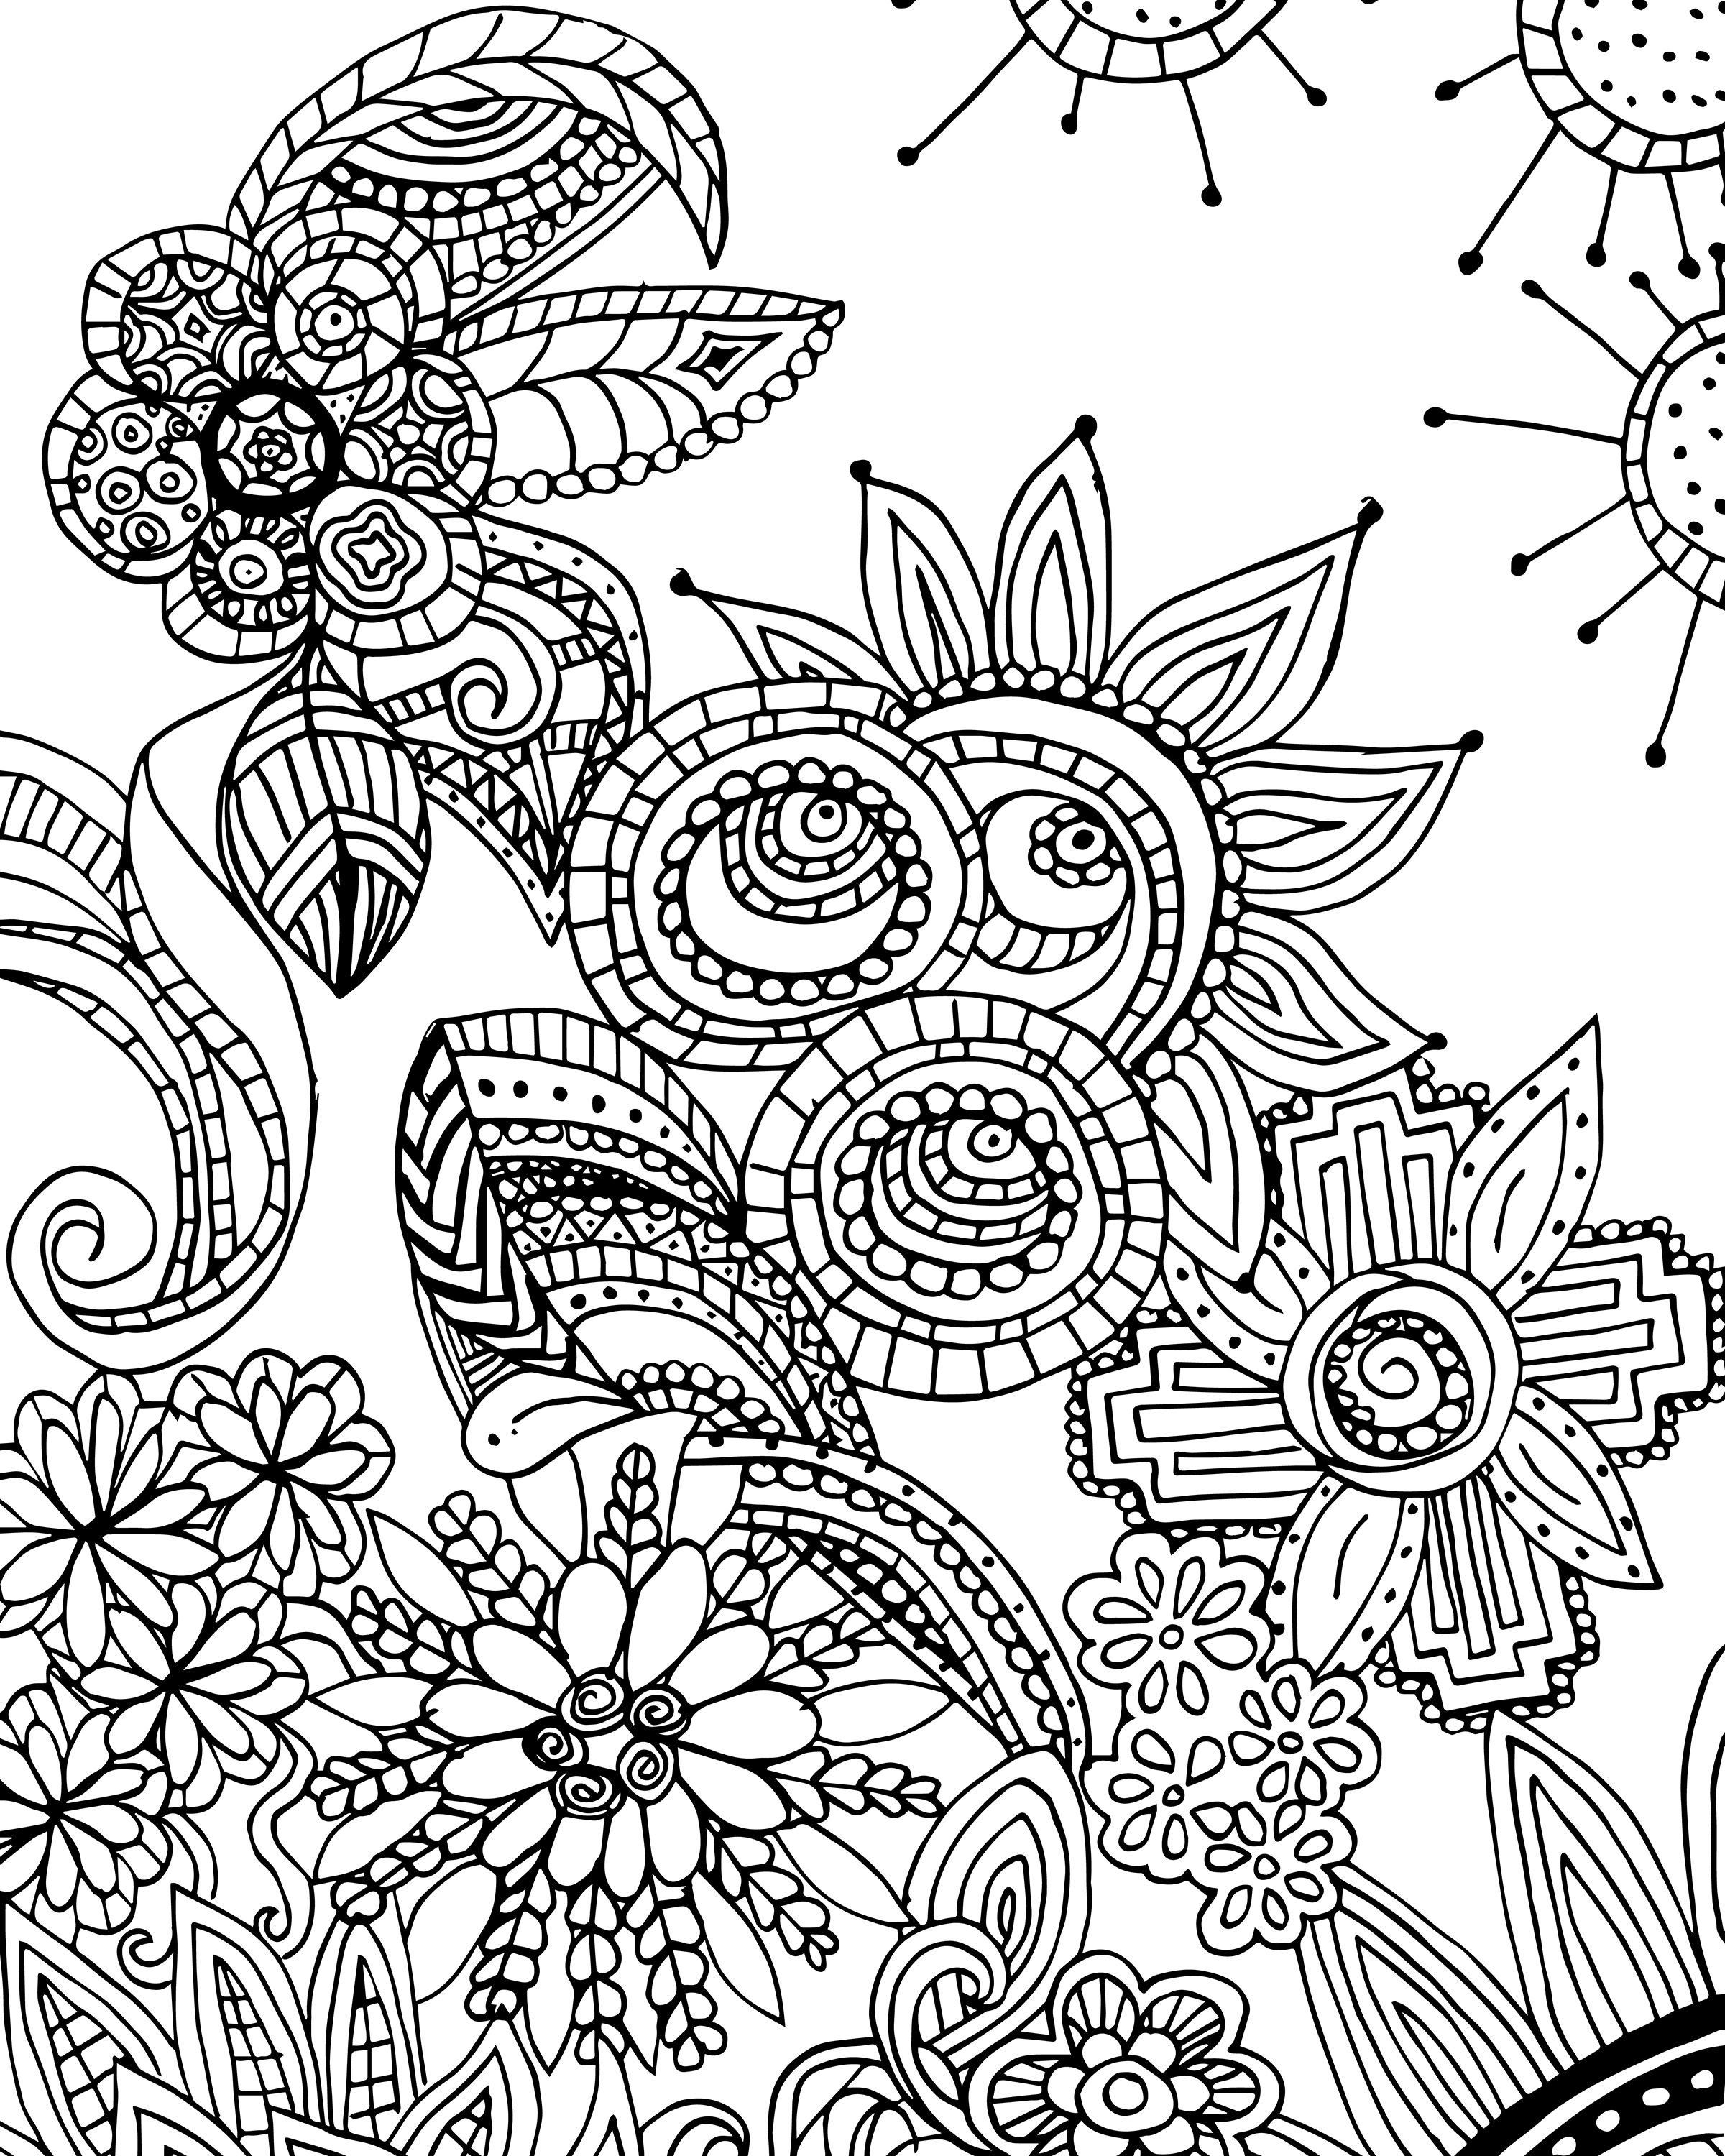 2400x3000 Free Designs To Color Coloring Sheets Voteforverde Com Flower